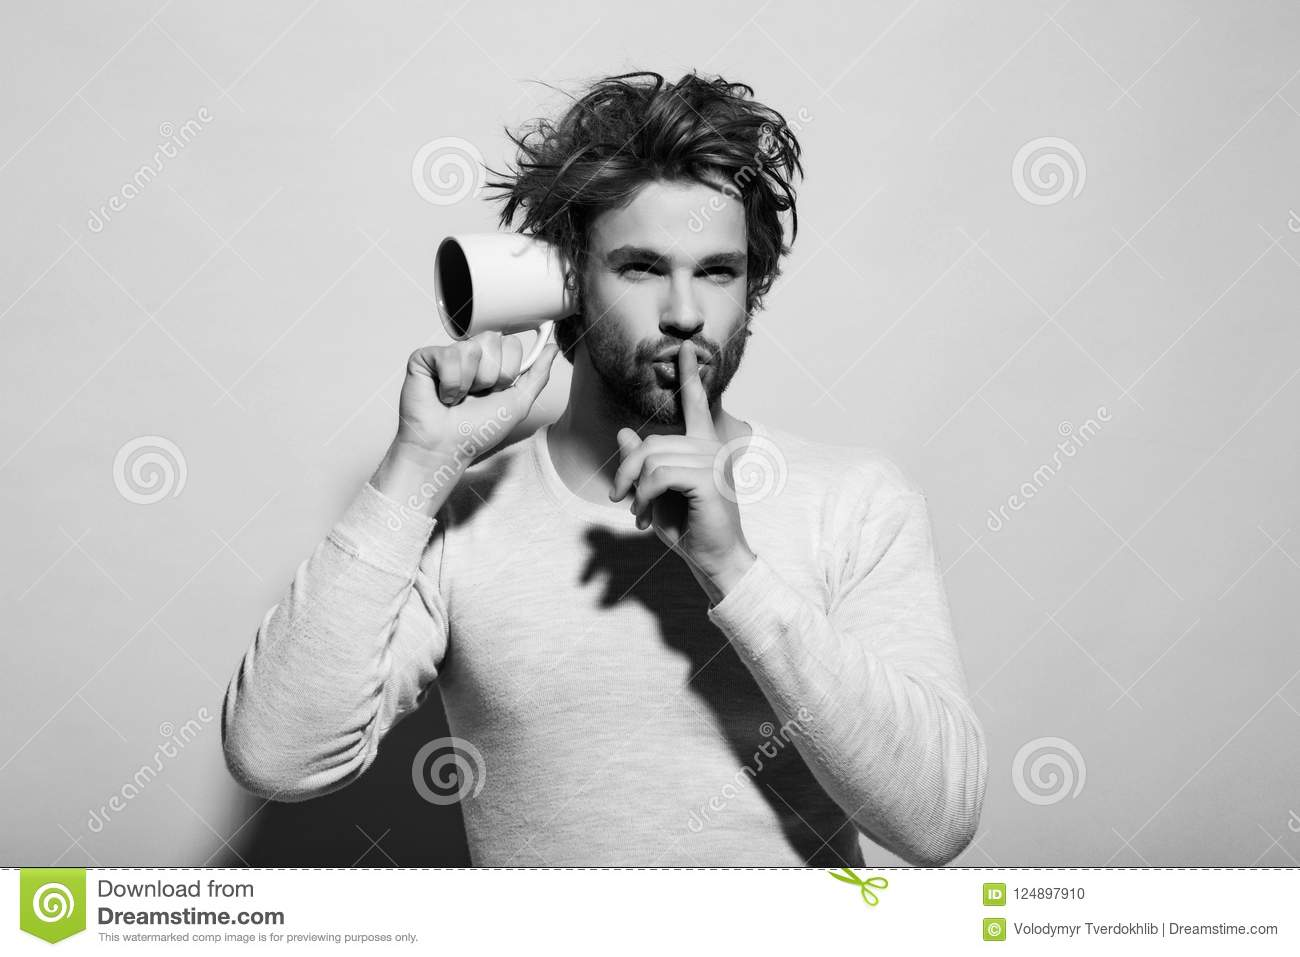 Hush gesture of man overhear with cup